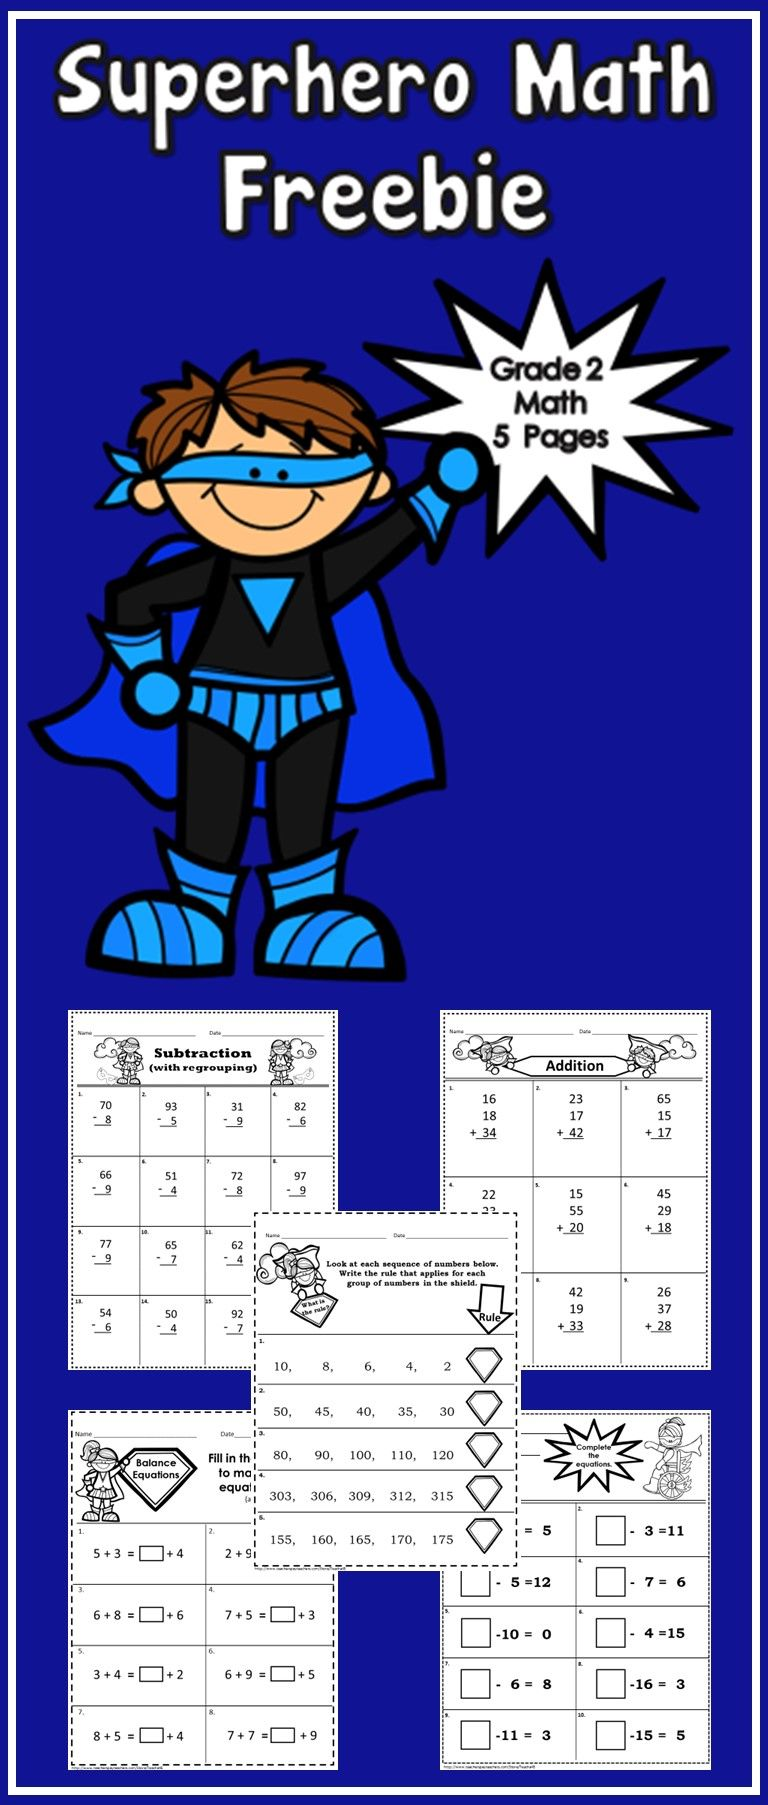 Freebie 5 No Prep Printables Sample Pages From Some Of My Grade 2 Superhero Themed Math Products Enjoy Superhero Math Second Grade Math Math Printables [ 1805 x 768 Pixel ]